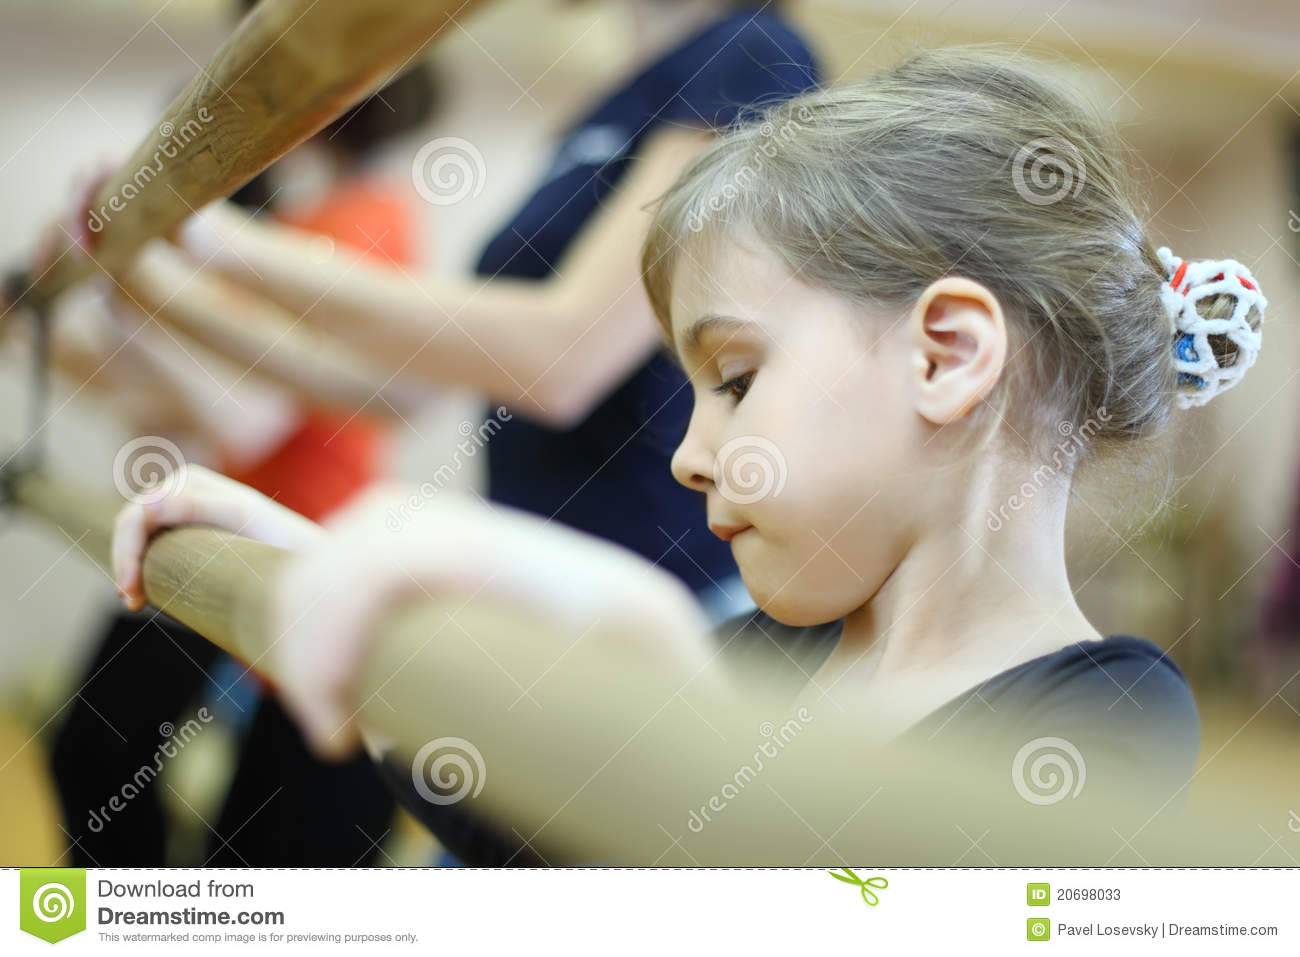 Ballet class concentrated face girl little